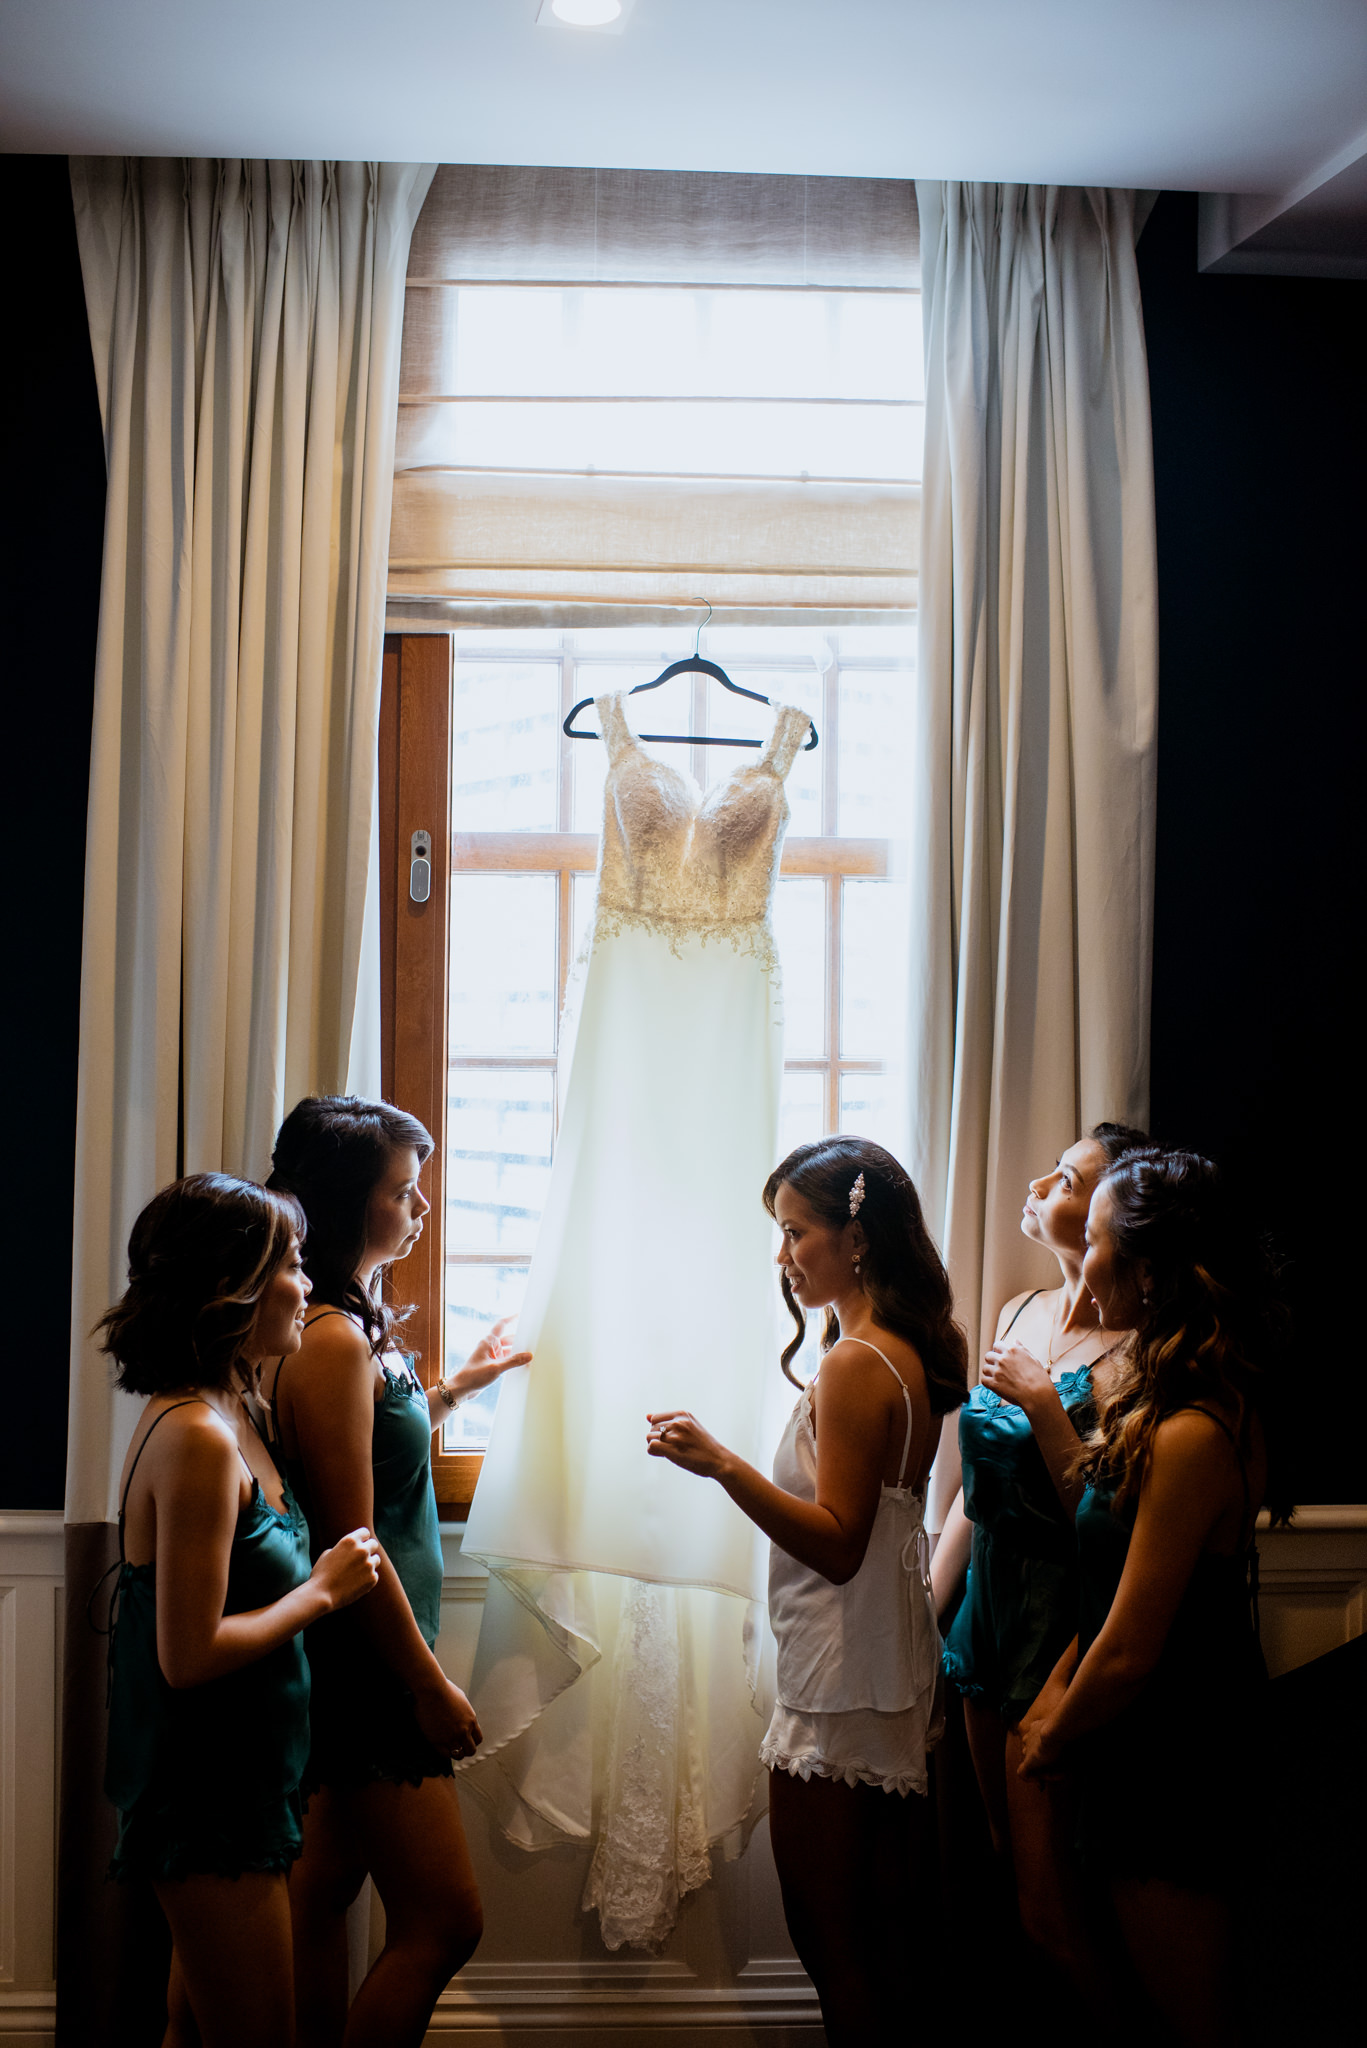 A bride and her four bridesmaids admire a wedding dress hanging in a window